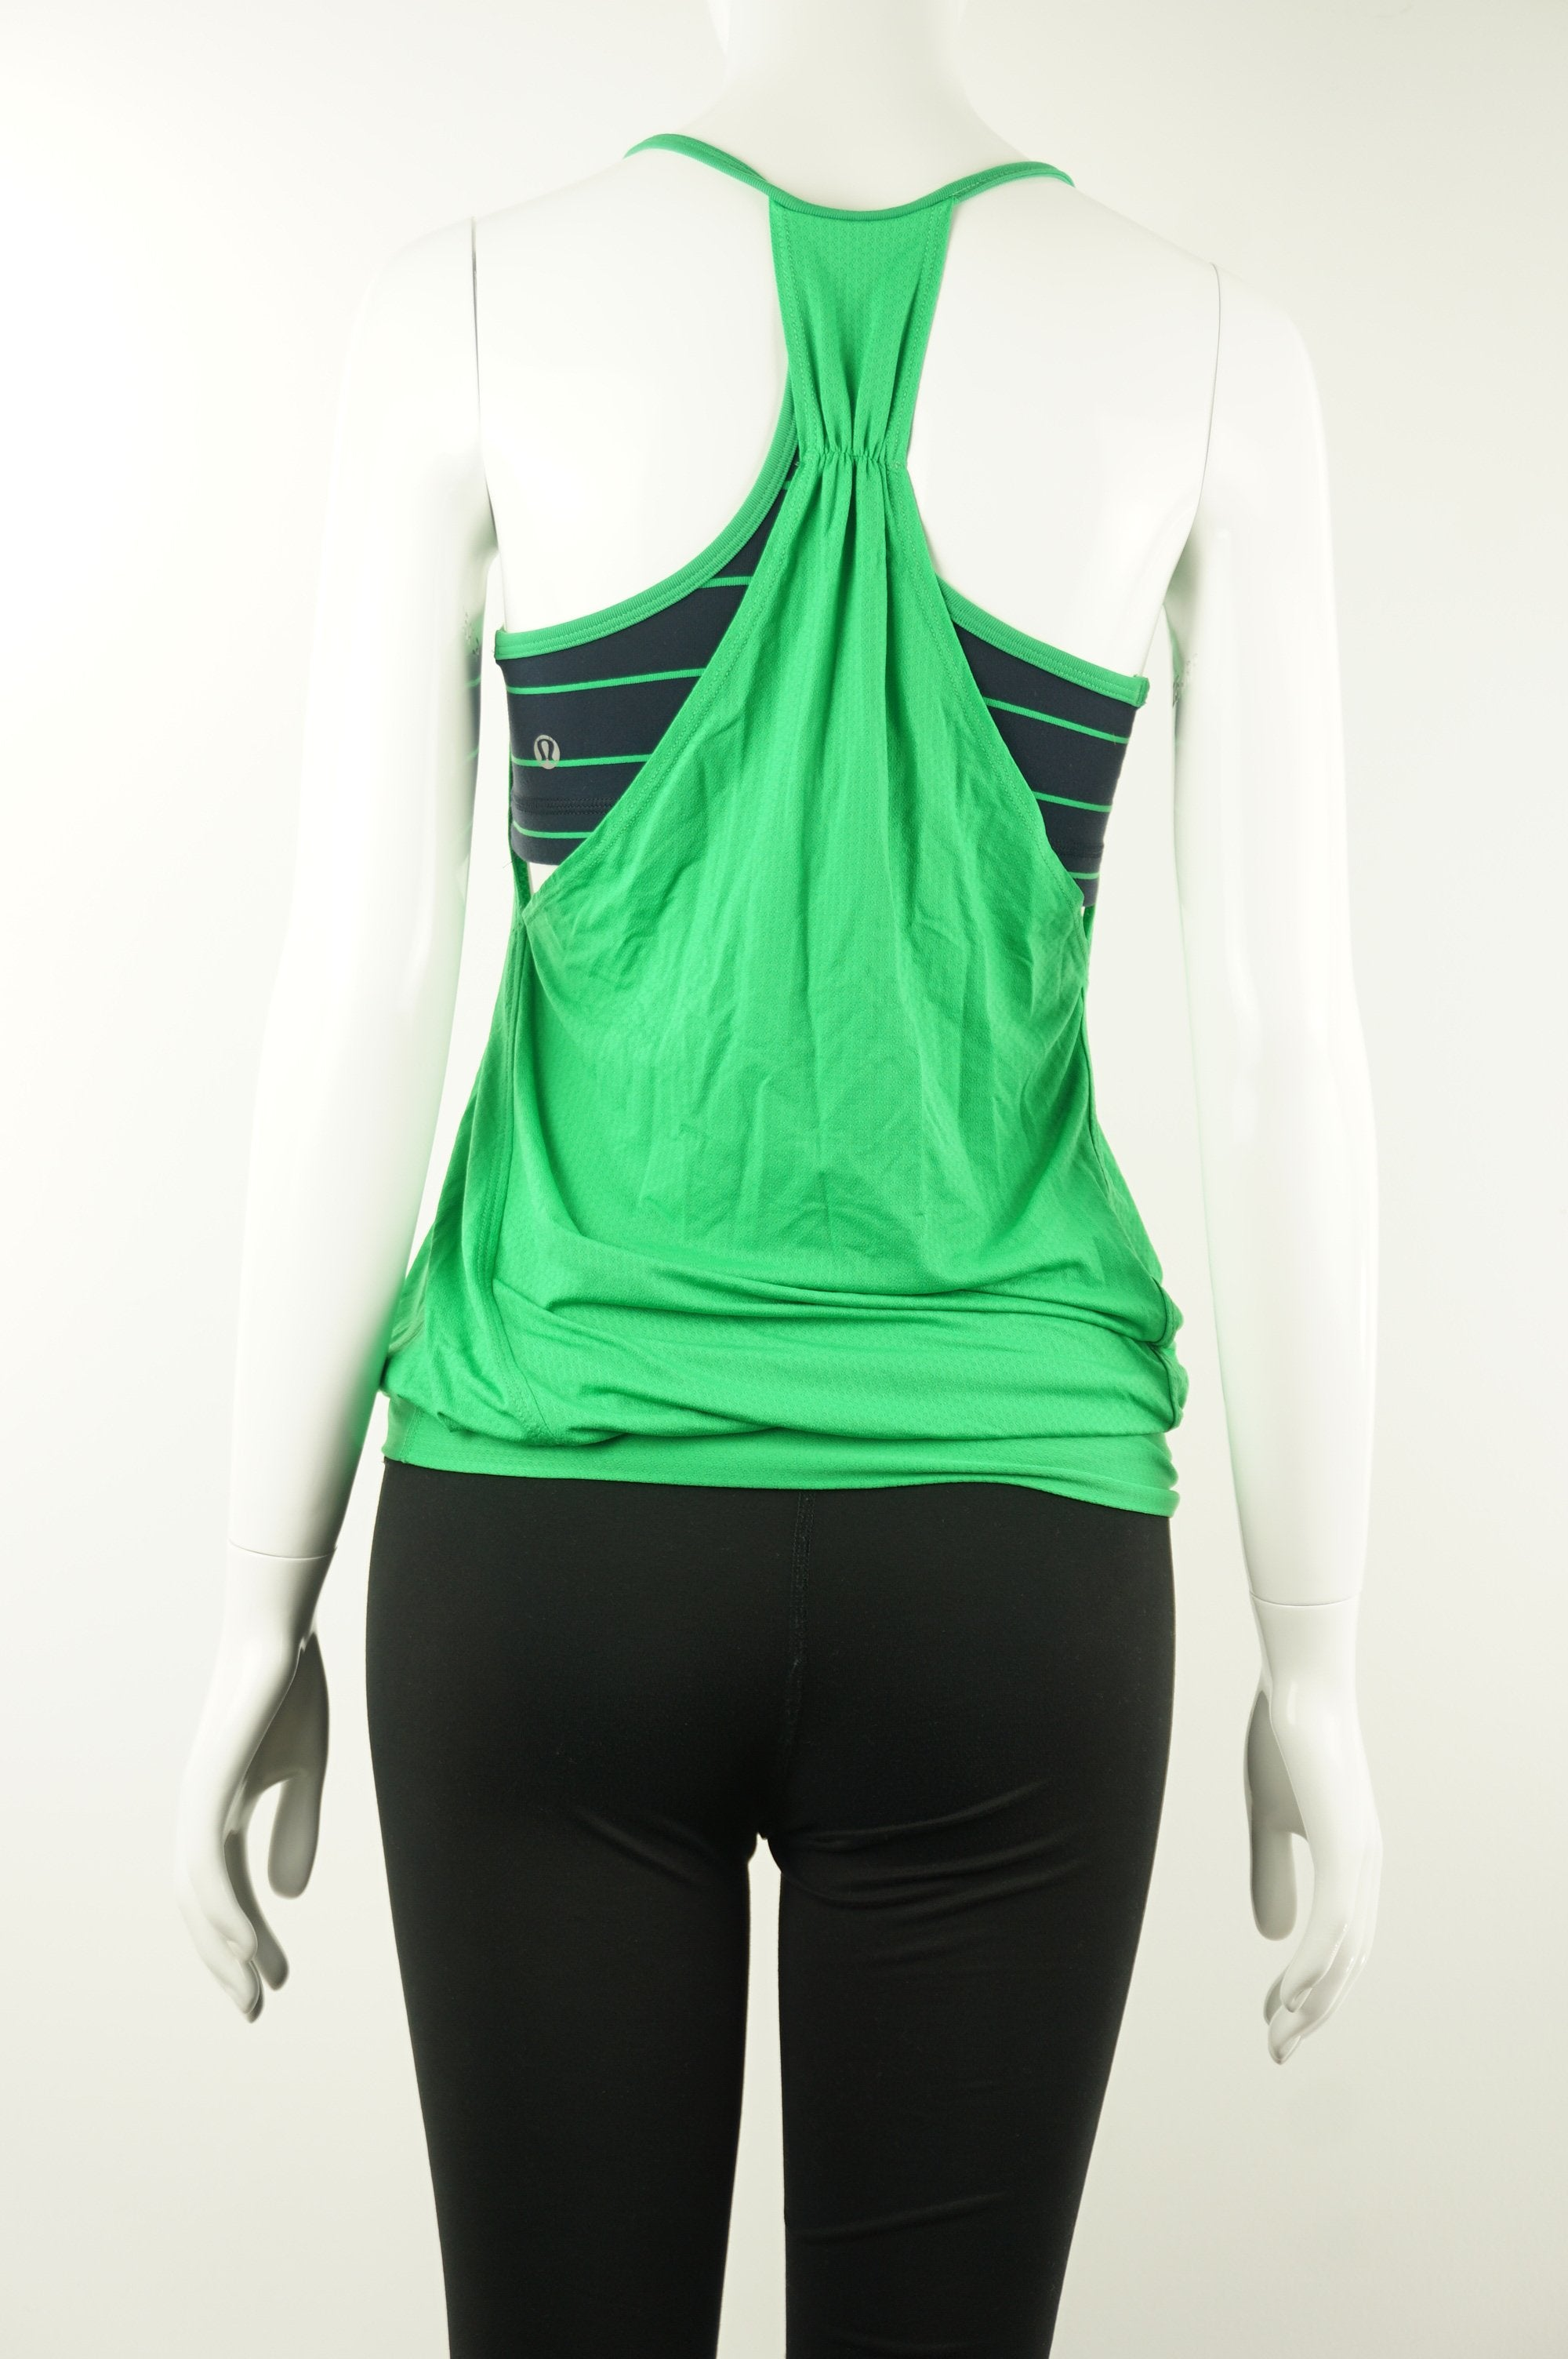 Lululemon Tank Top with Built-in Bra, Bright tank top with built-in bea for all your atheletic needs. , Green, Blue, Cotton and Lyocel, women's Activewear, Tops, women's Green, Blue Activewear, Tops, Lululemon women's Activewear, Tops, women's tabk top, lululemon women's athletic top